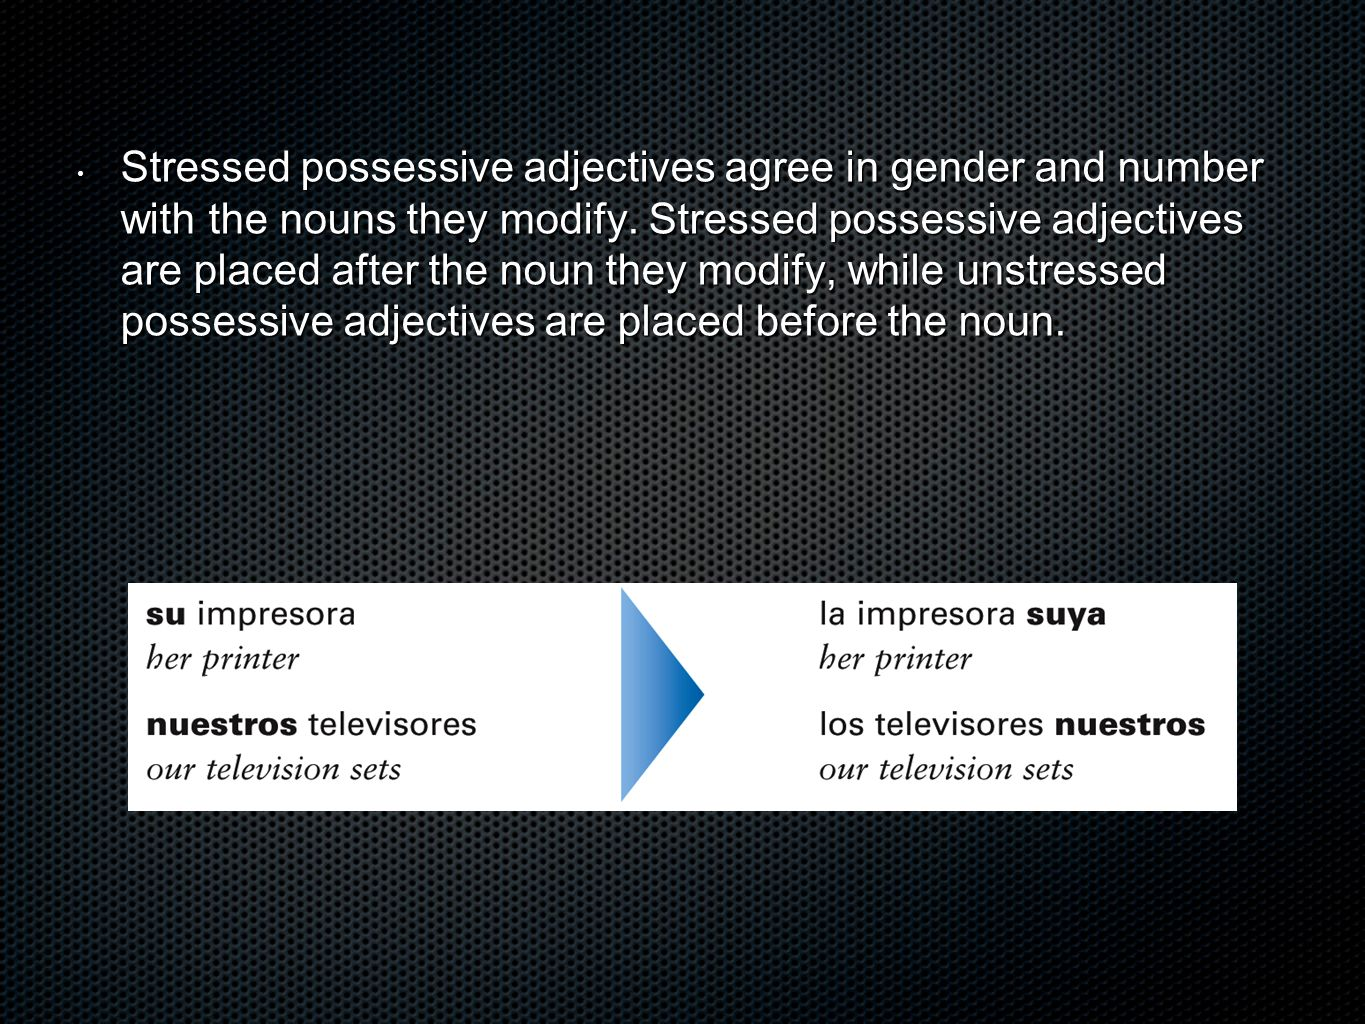 Stressed possessive adjectives agree in gender and number with the nouns they modify. Stressed possessive adjectives are placed after the noun they mo